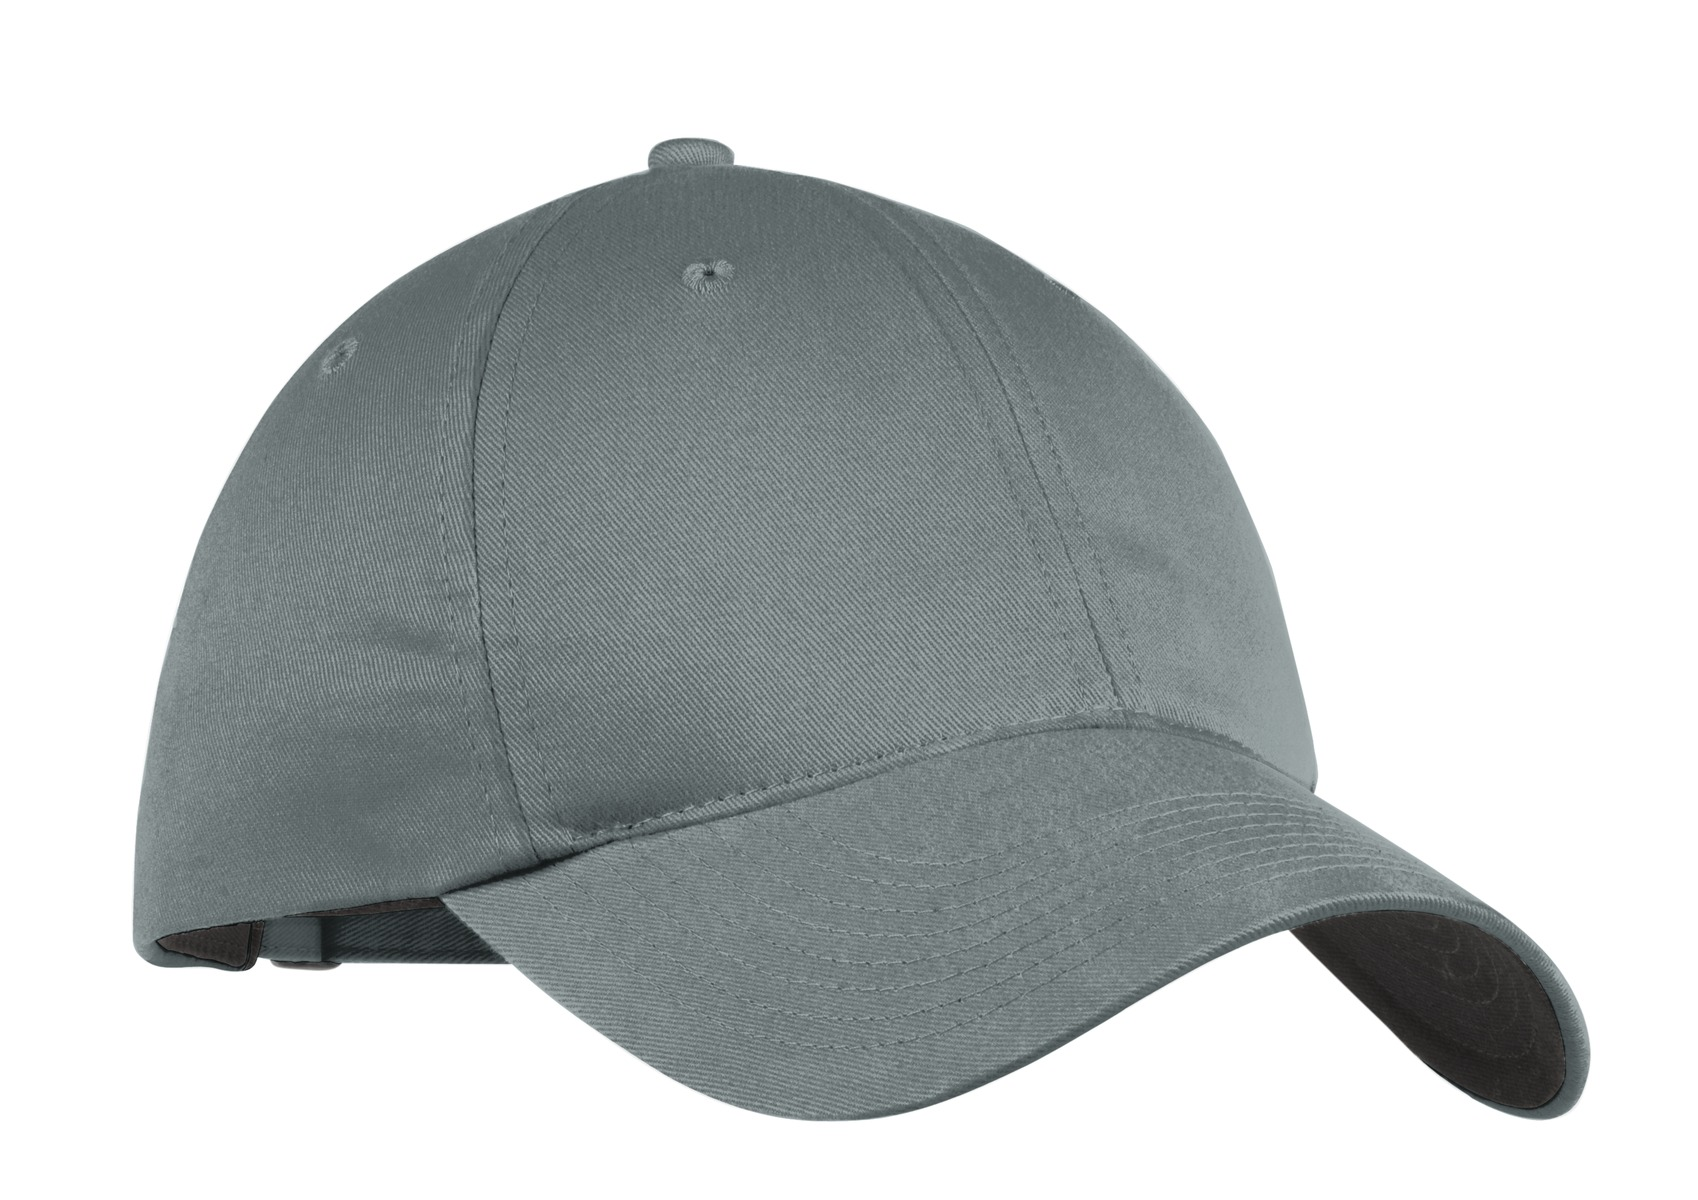 Nike Unstructured Twill Cap.  580087 - Dark Grey